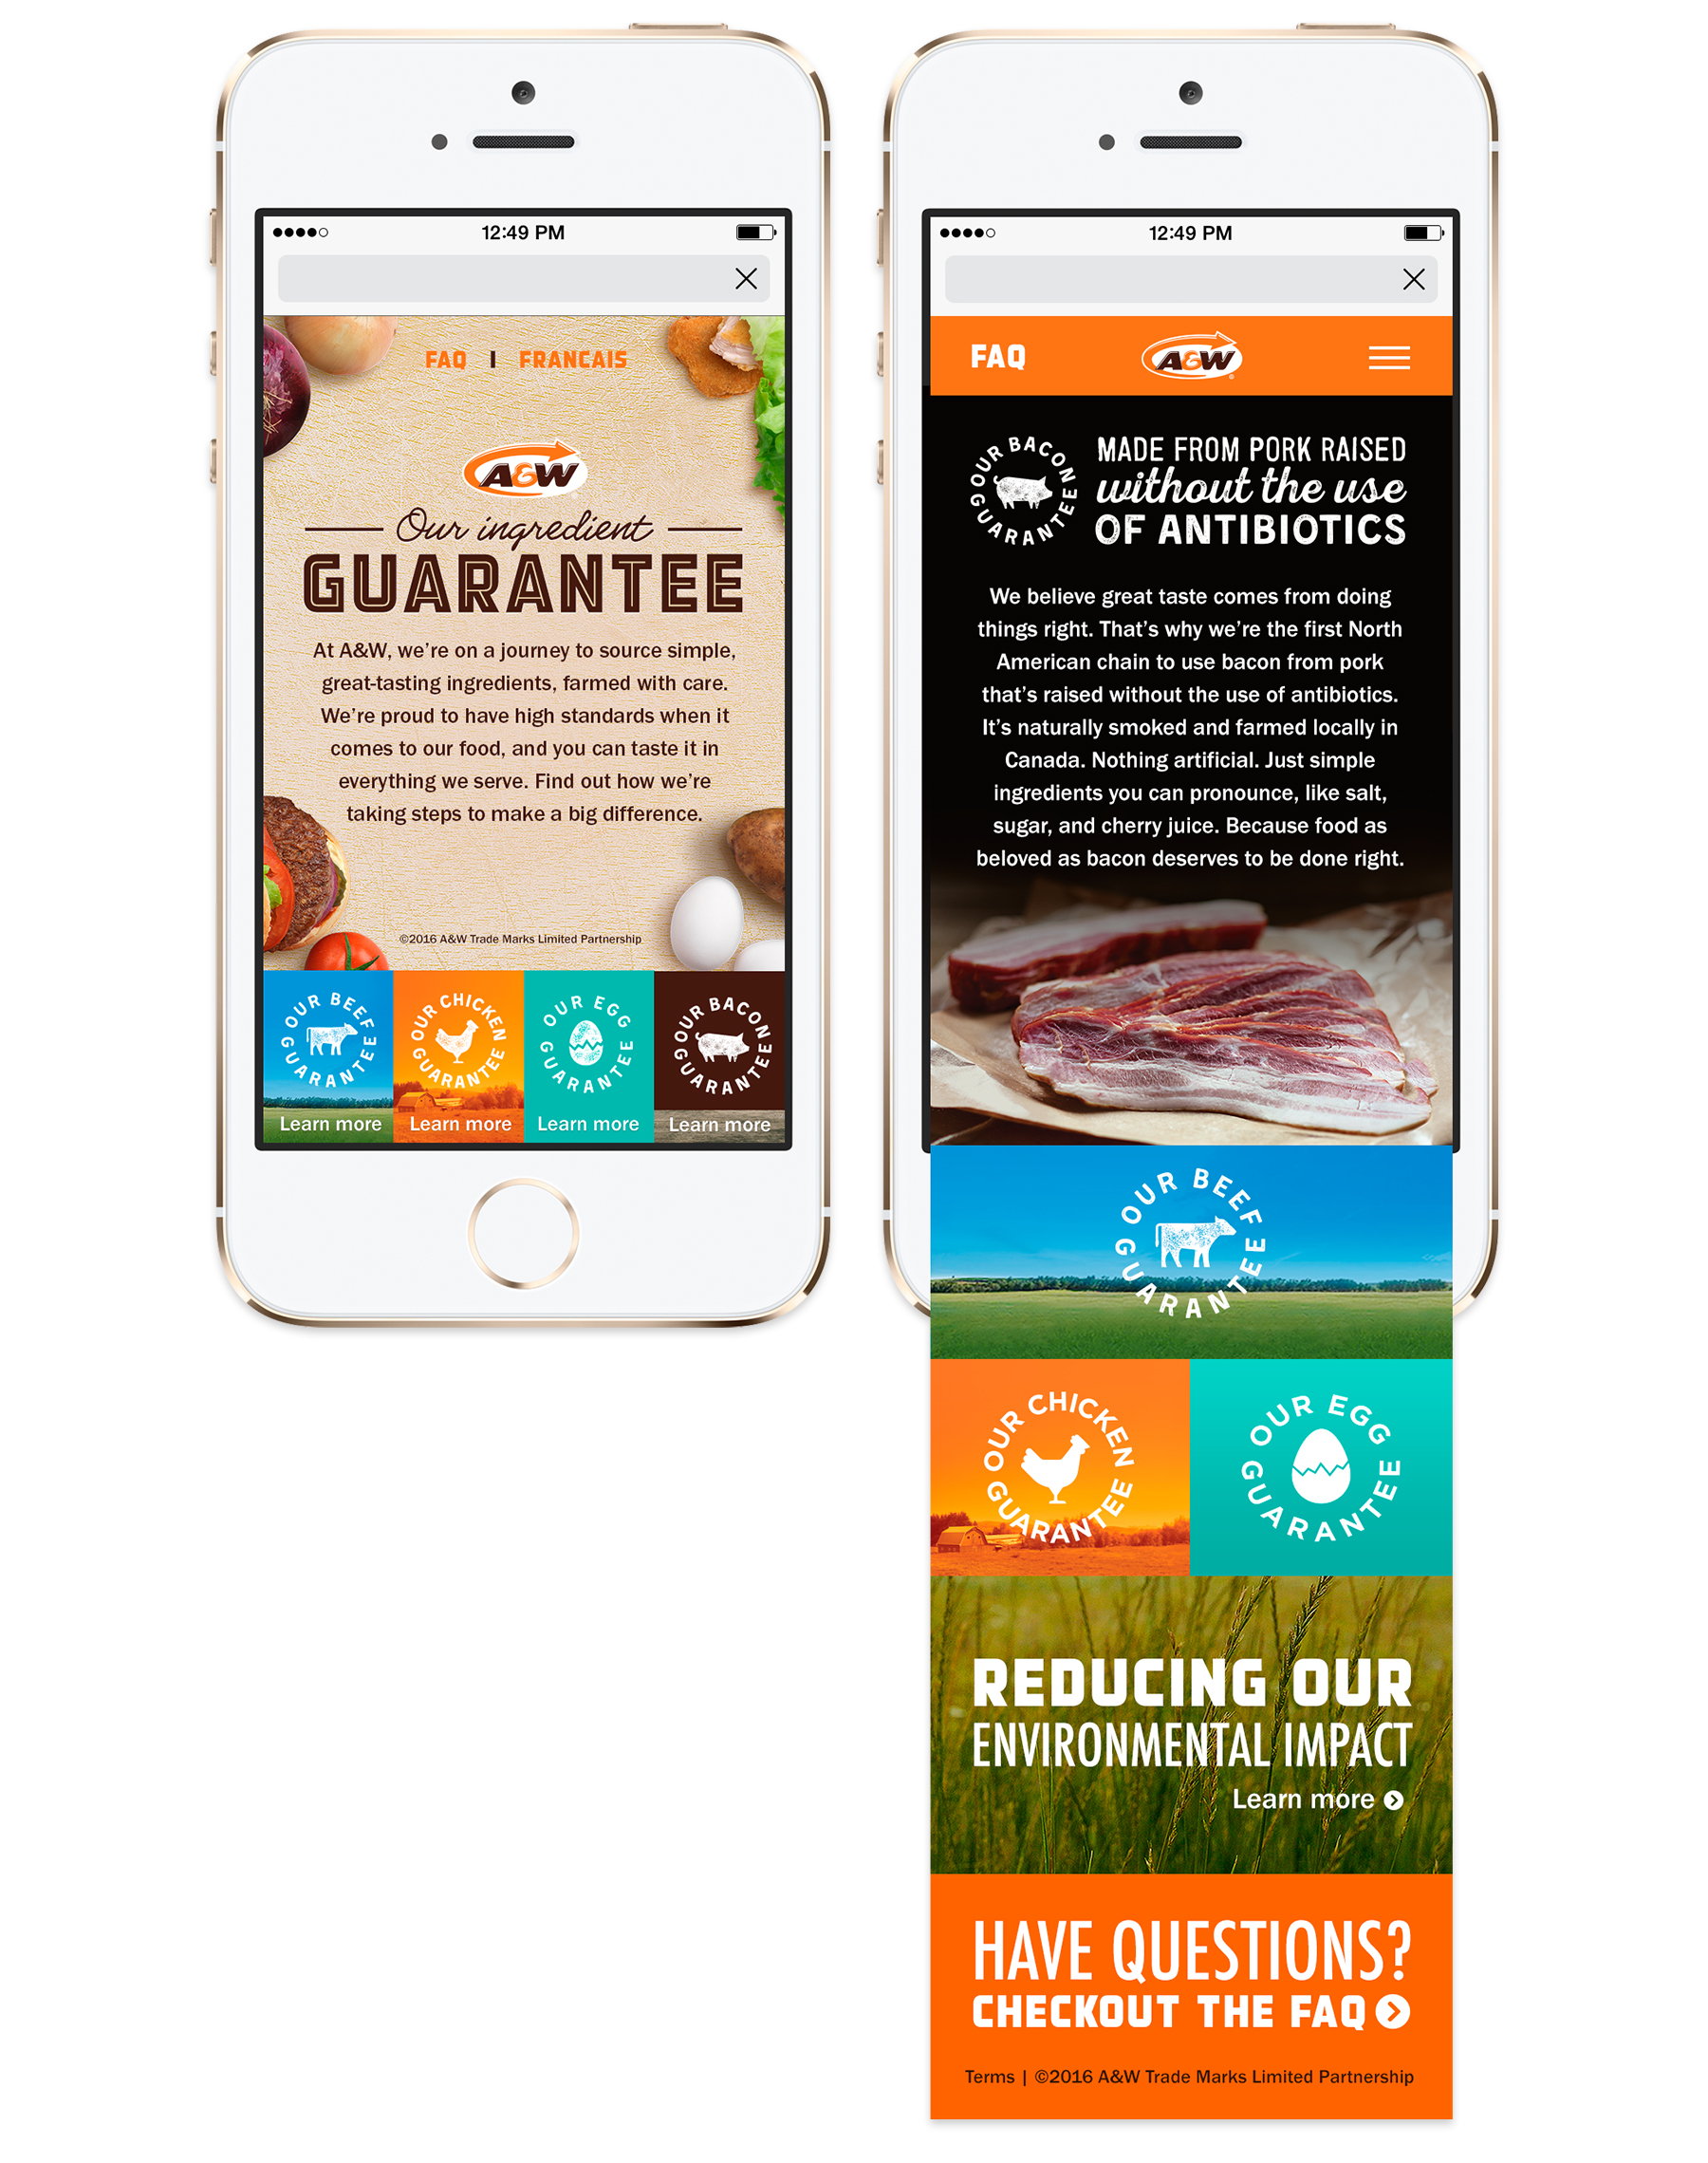 Mobile, A&W's Better Ingredients—Homepage and Landing Page